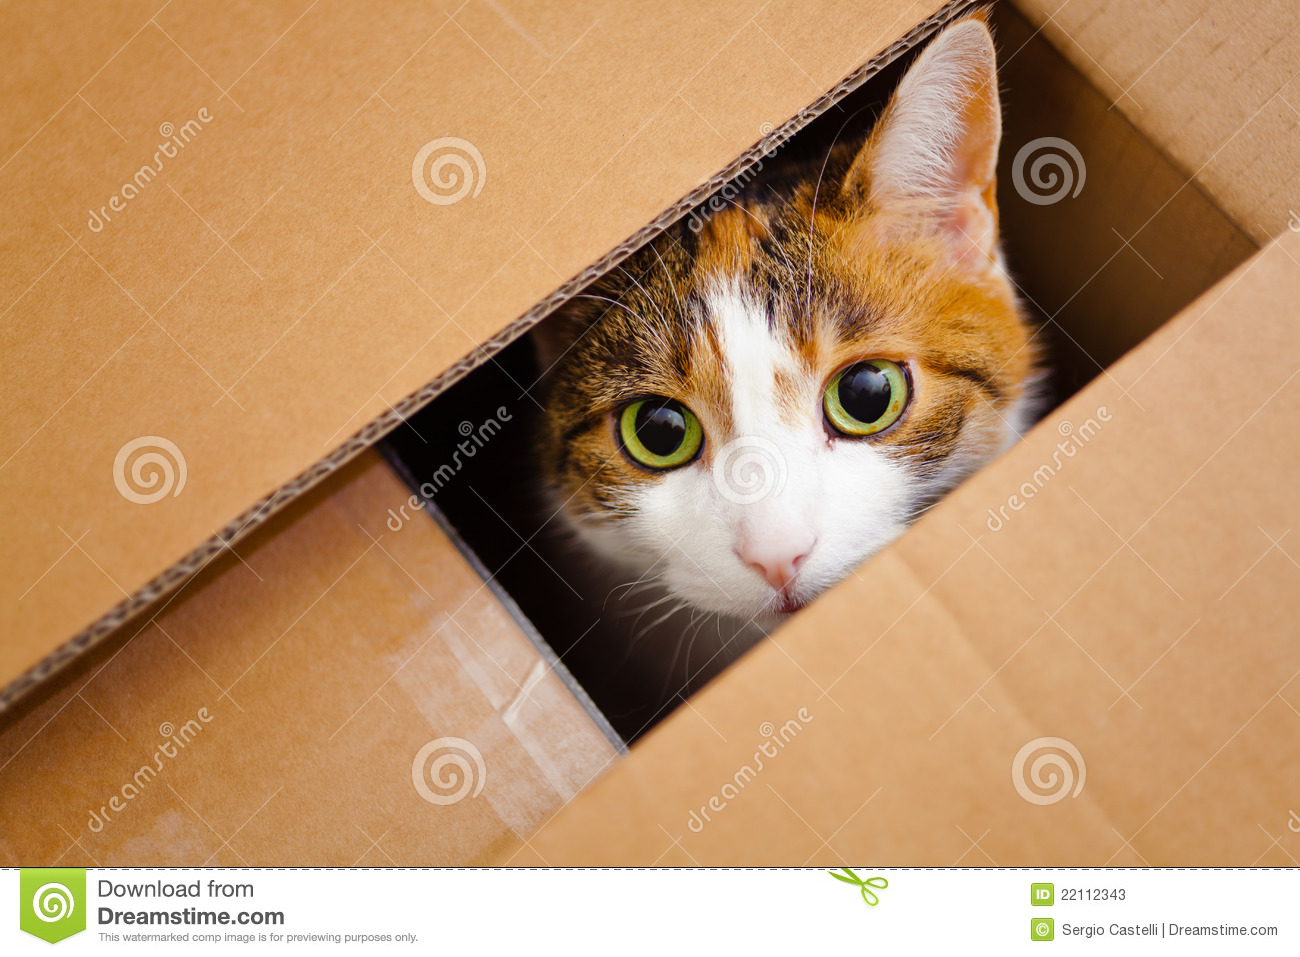 cat in a box stock photos image 22112343. Black Bedroom Furniture Sets. Home Design Ideas